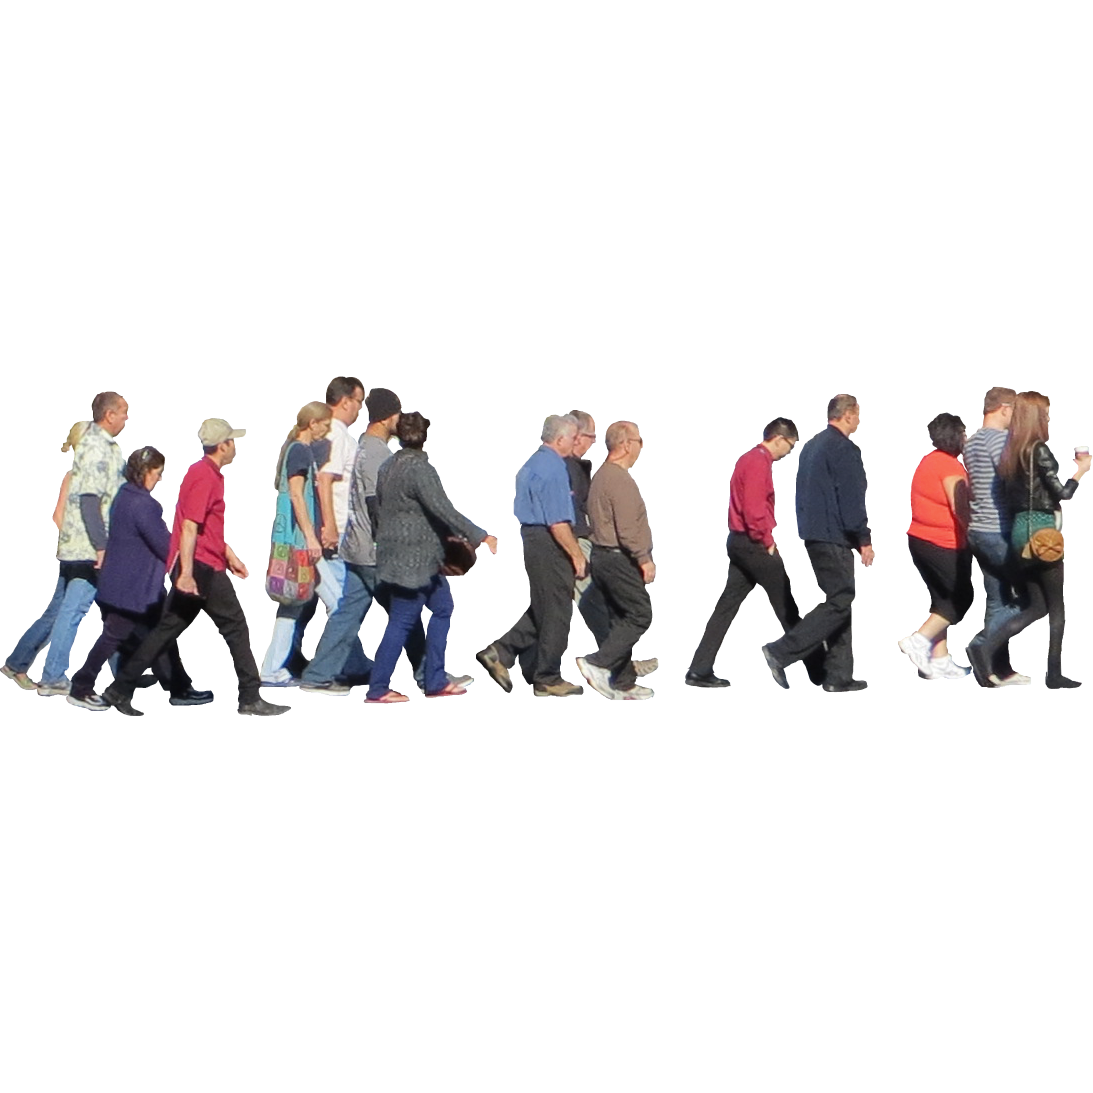 Crowd of people walking photoshop bing images - Crowd Crossing The Street